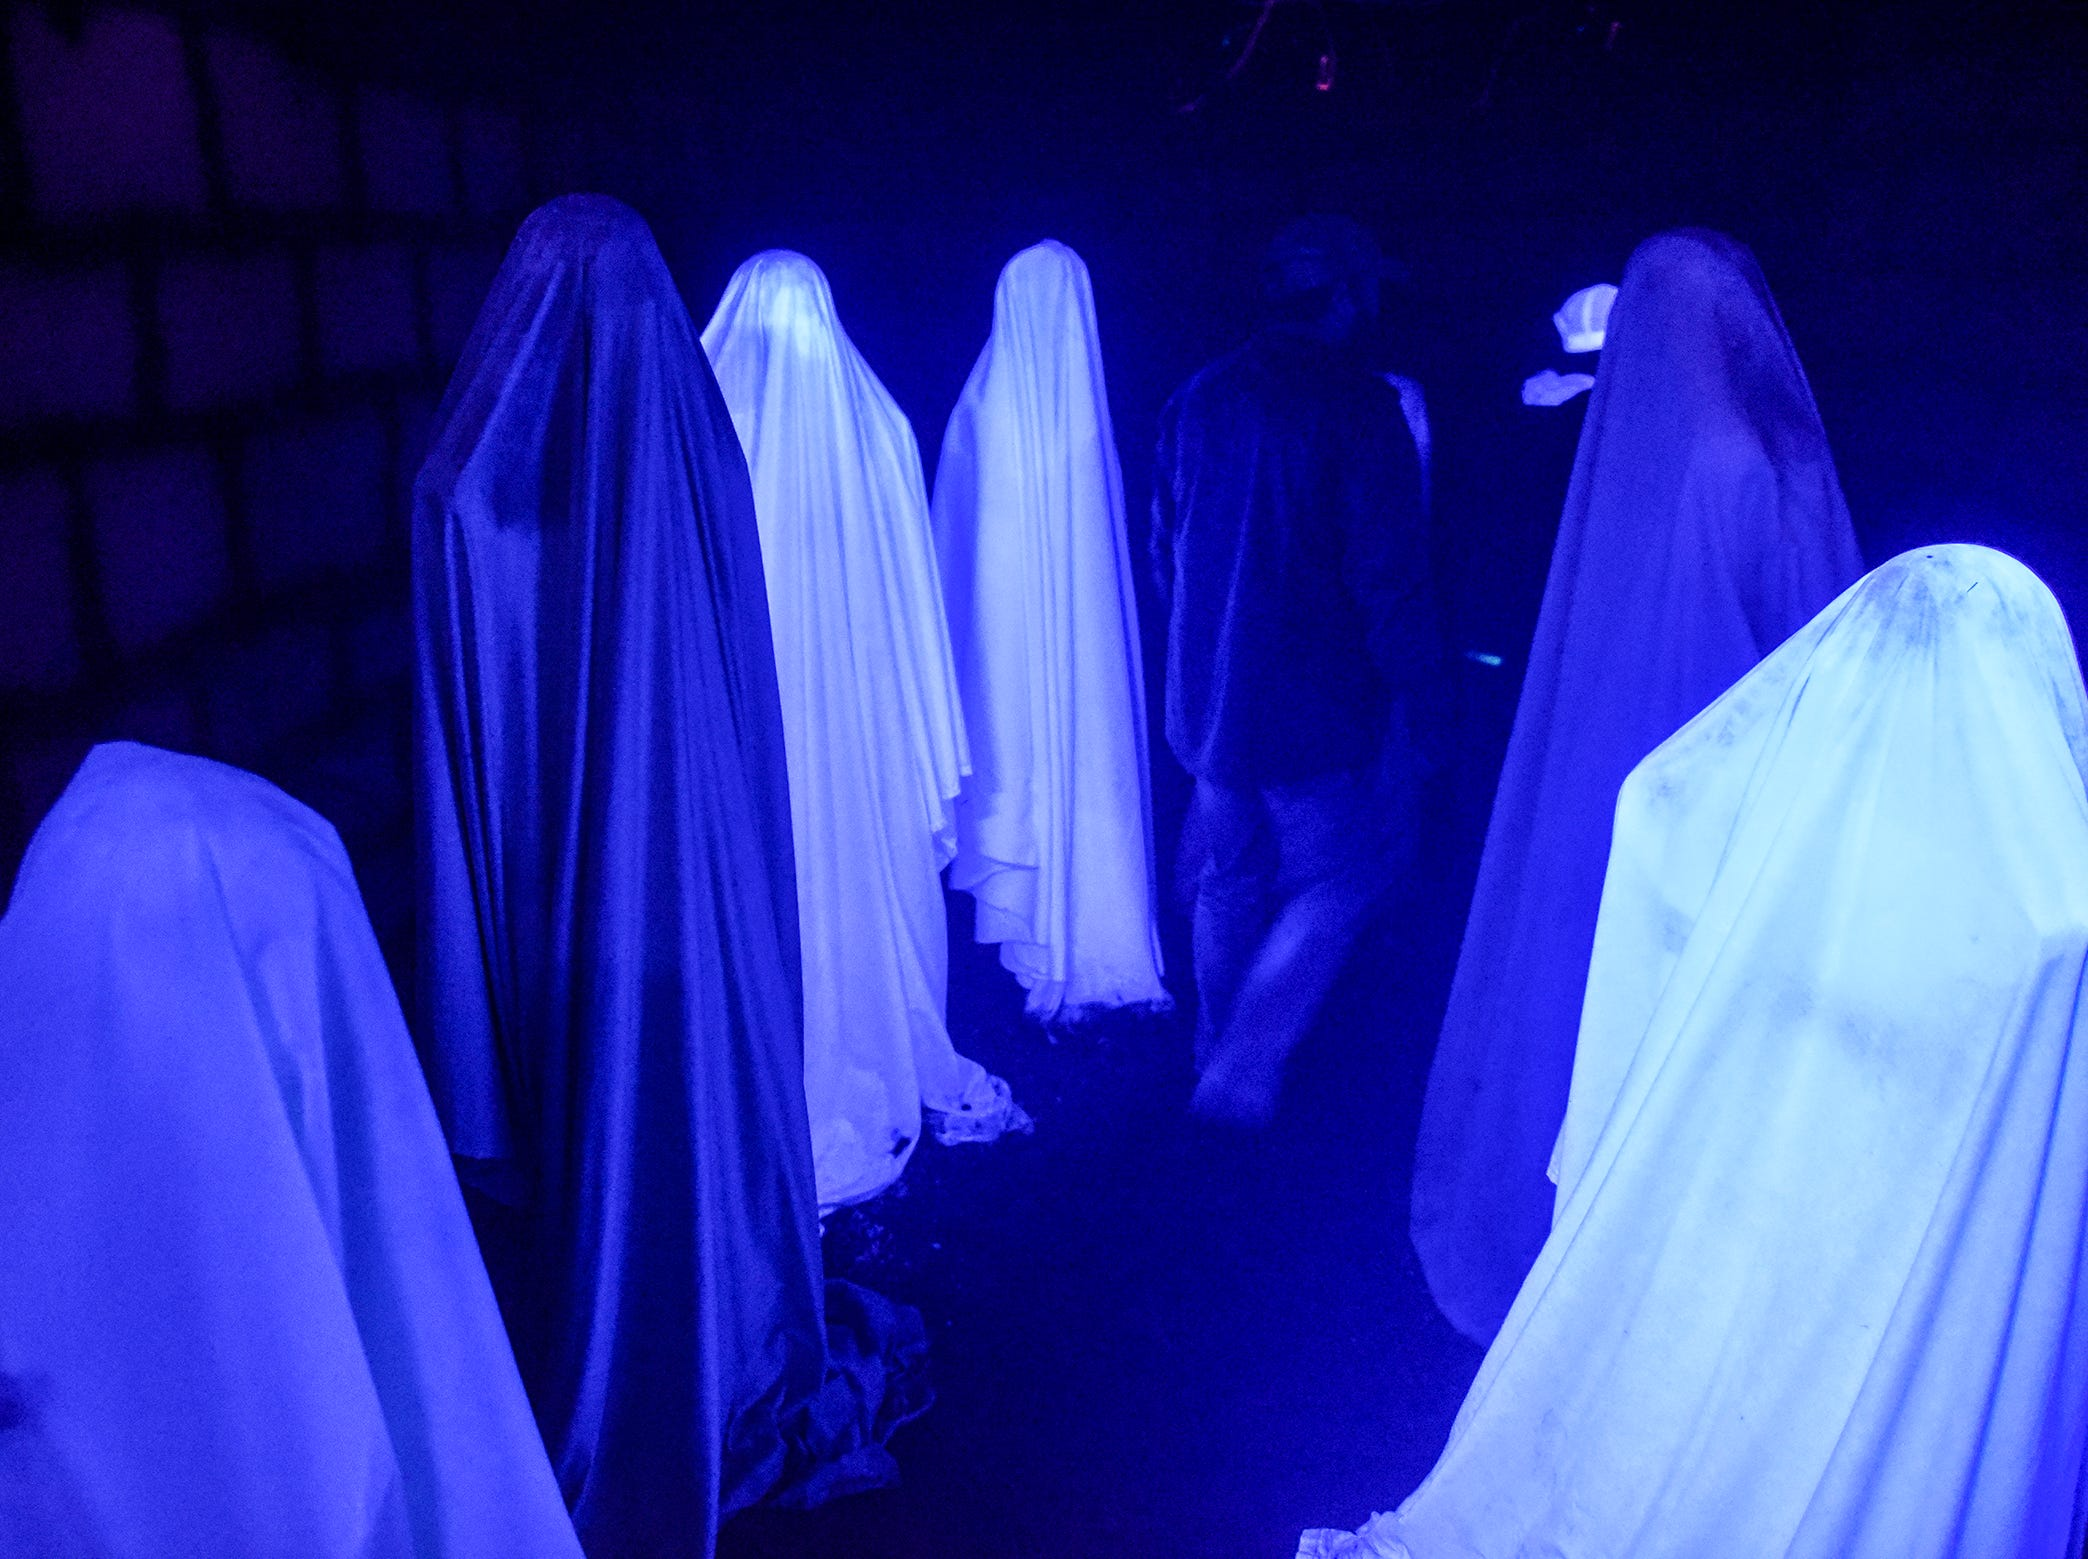 Visitors walk through a room Thursday, Oct. 18, at Molitor's Haunted Acres in Sauk Rapids.